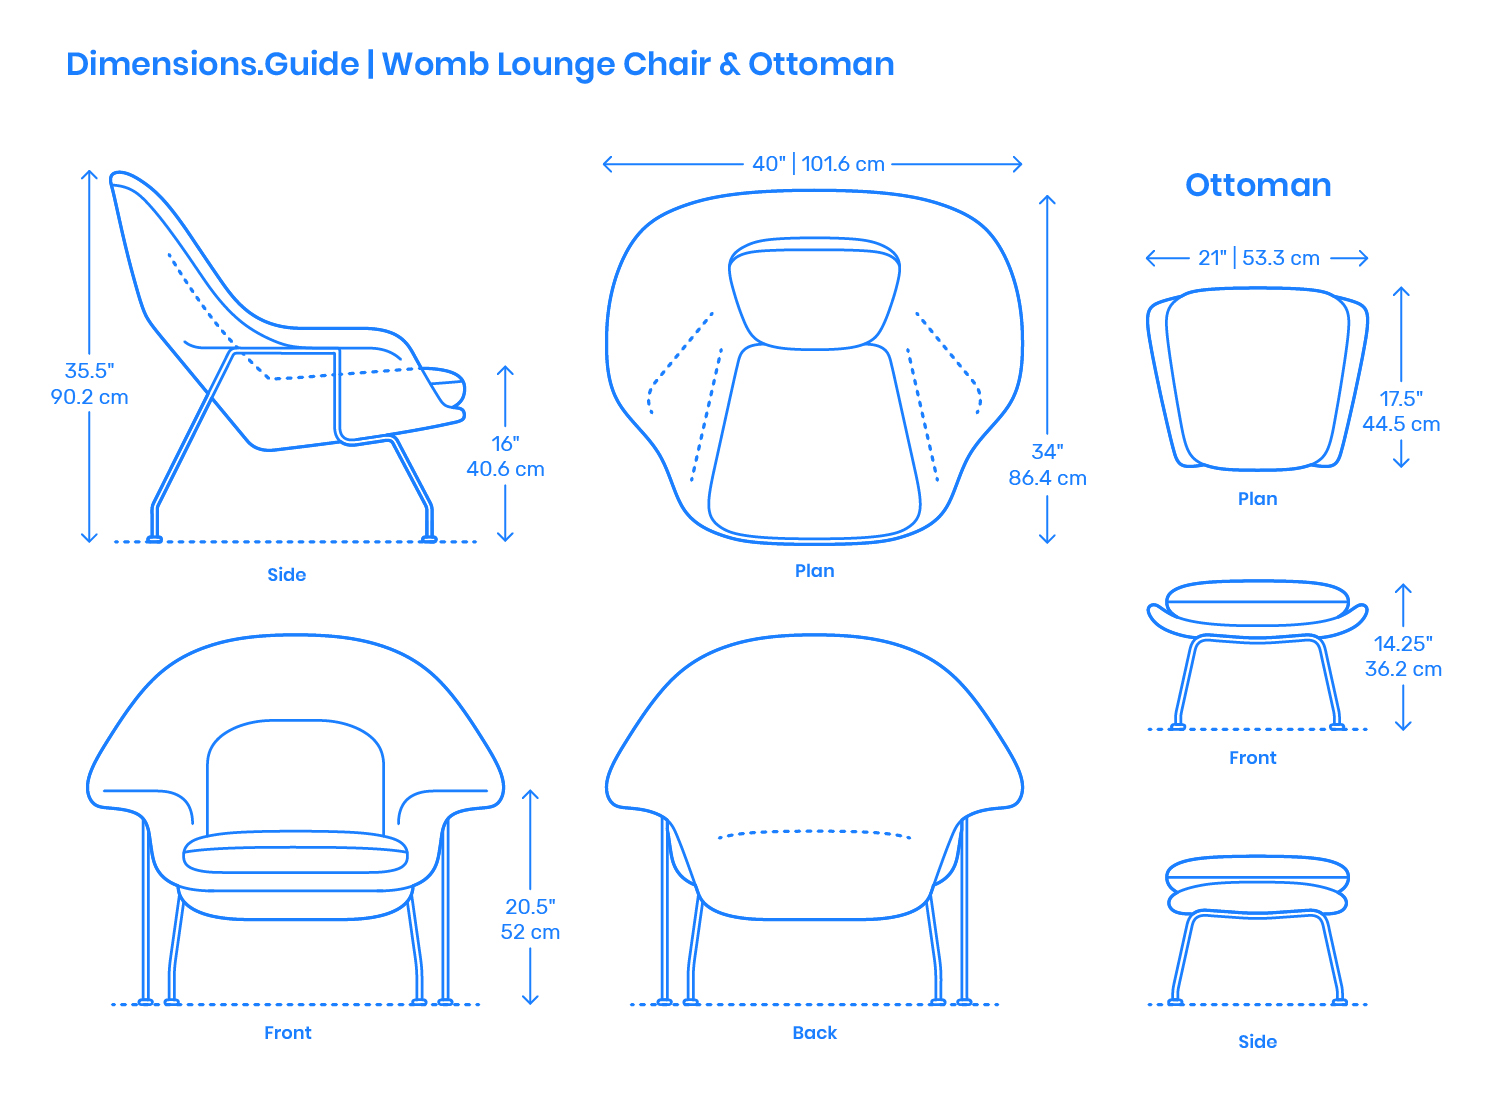 Egg Chair Afmetingen.Womb Chair Ottoman Dimensions Drawings Dimensions Guide